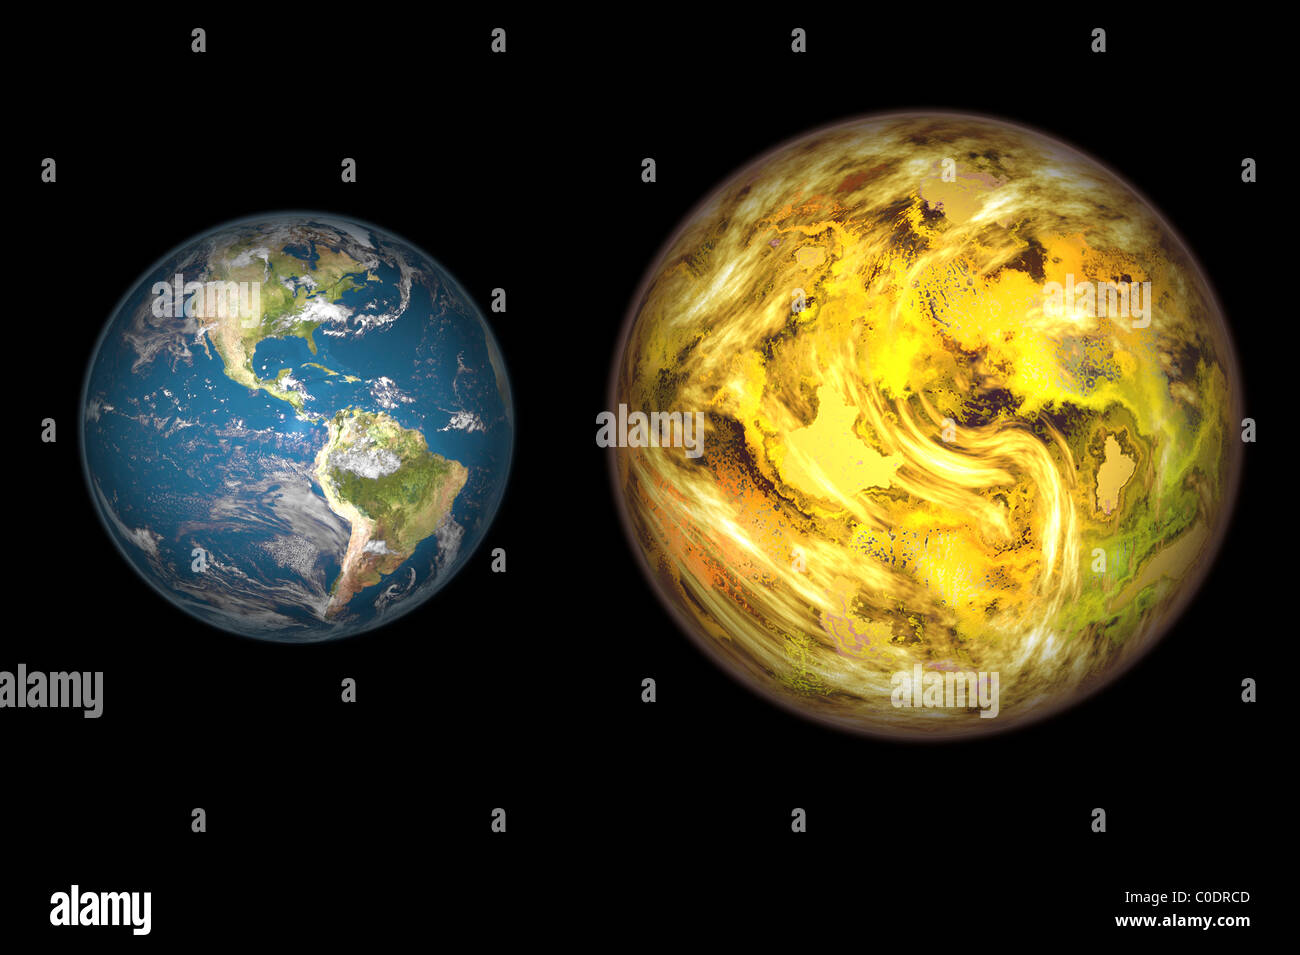 Illustration comparing the size of extrasolar planet Gliese 581 c with that of the Earth. - Stock Image